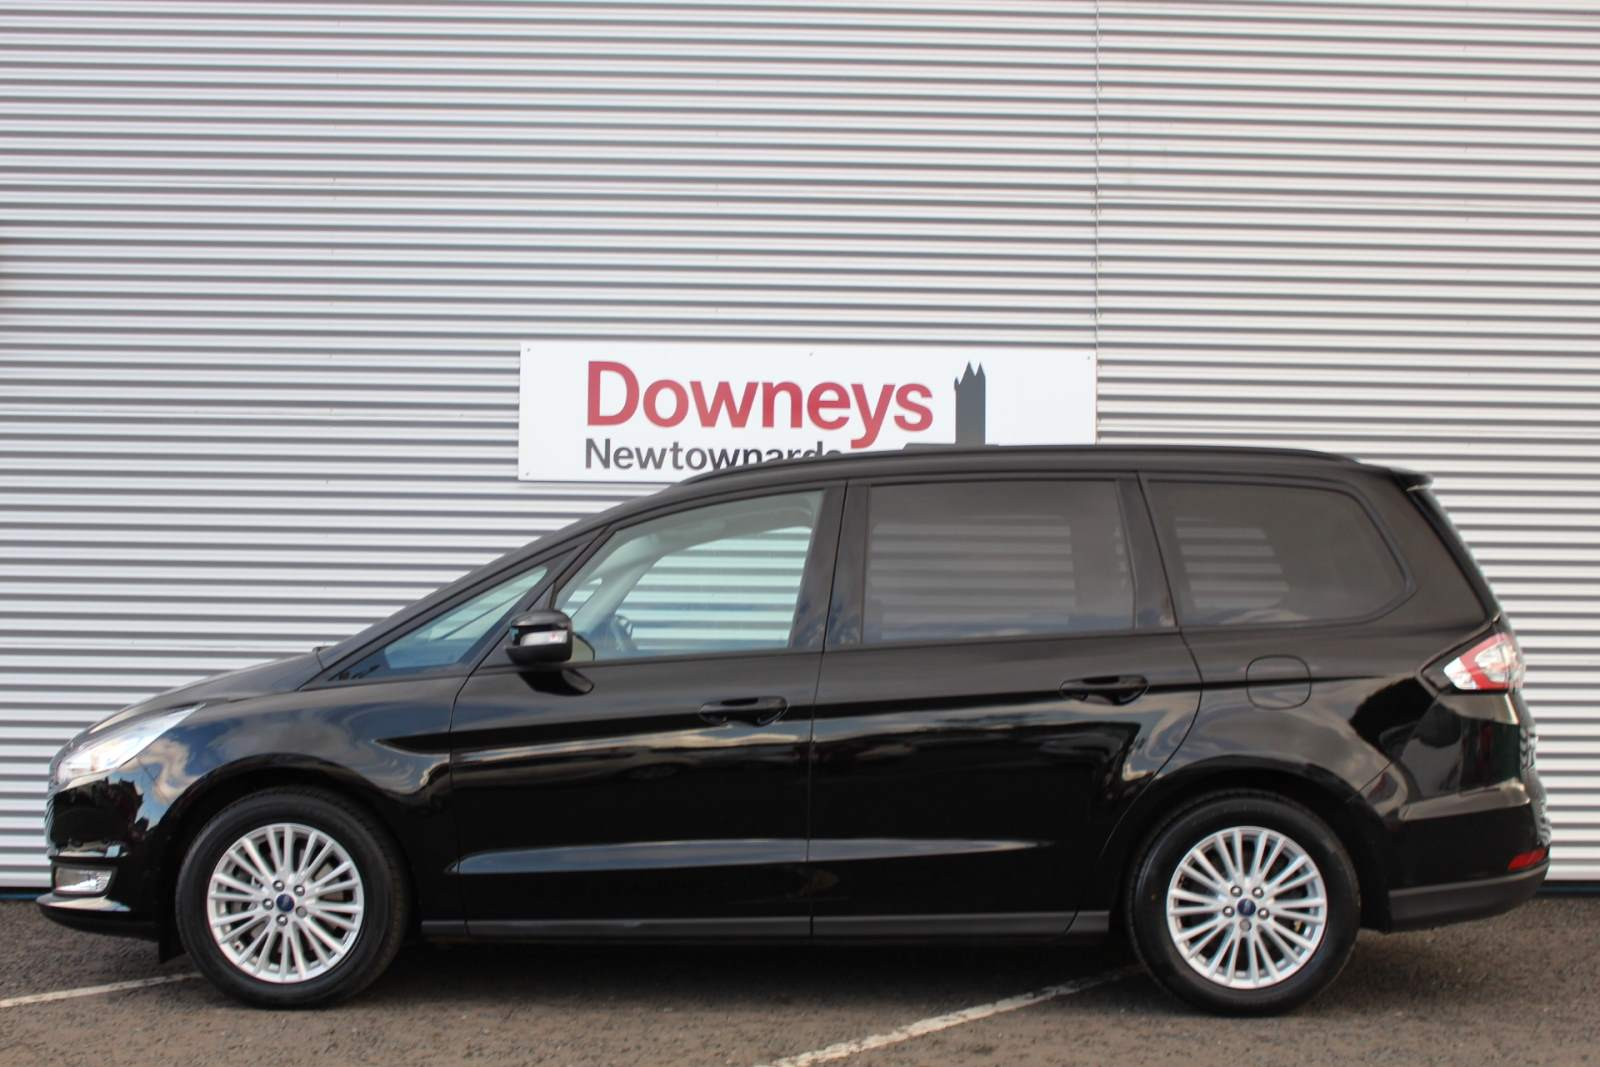 Ford Galaxy Zetec 2 0 Tdci 7 Seater For Sale At Downeys Newtownards